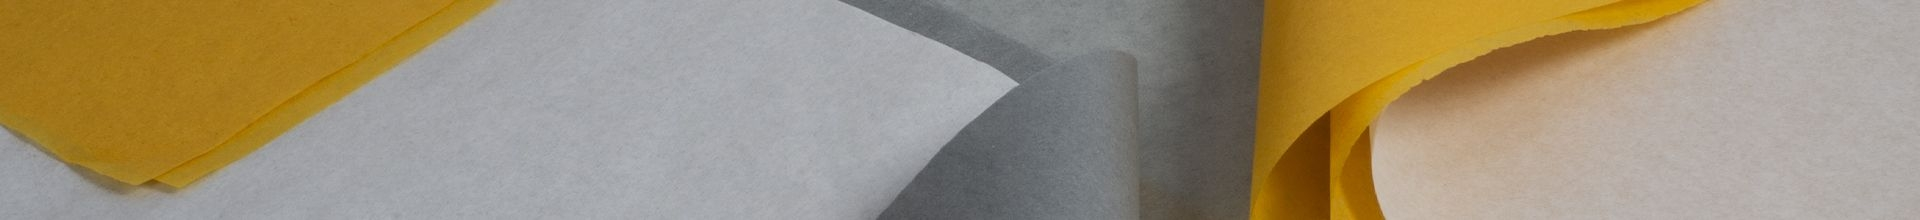 Tissue Paper - Large Sheets